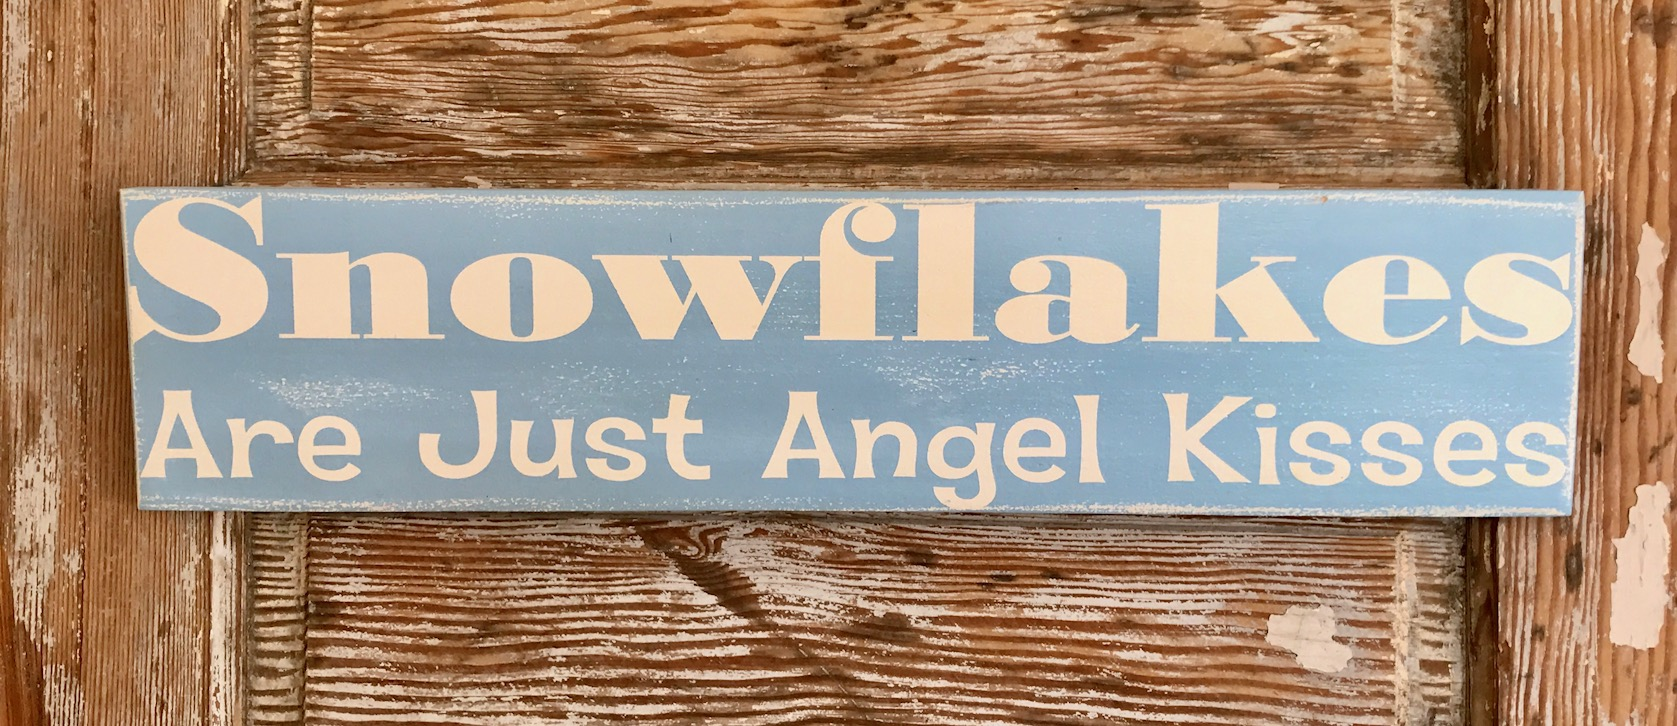 Snowflakes Are Just Angel Kisses.  Wood Sign